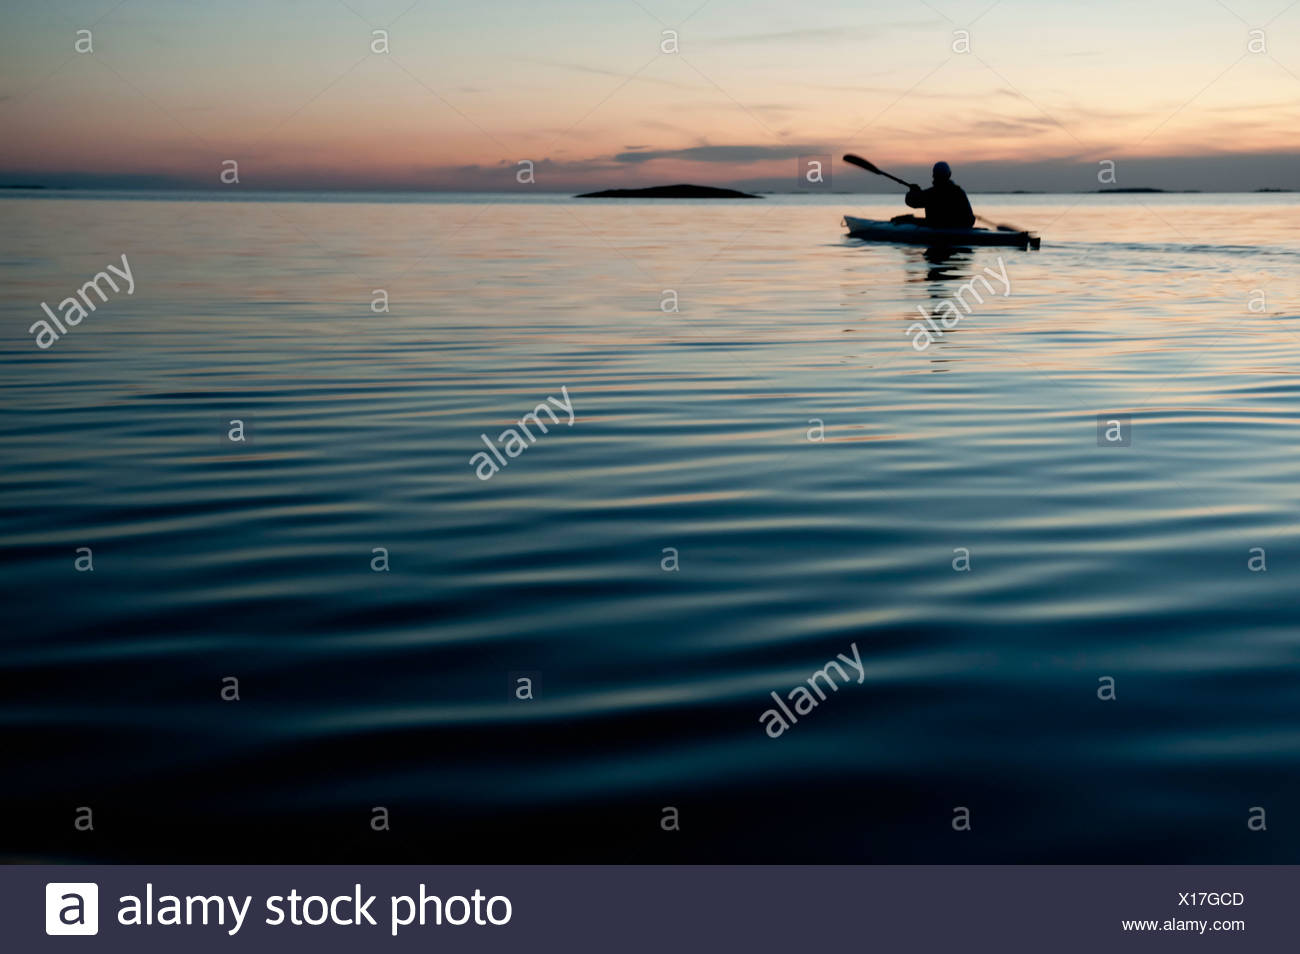 Silhouetted person oaring - Stock Image